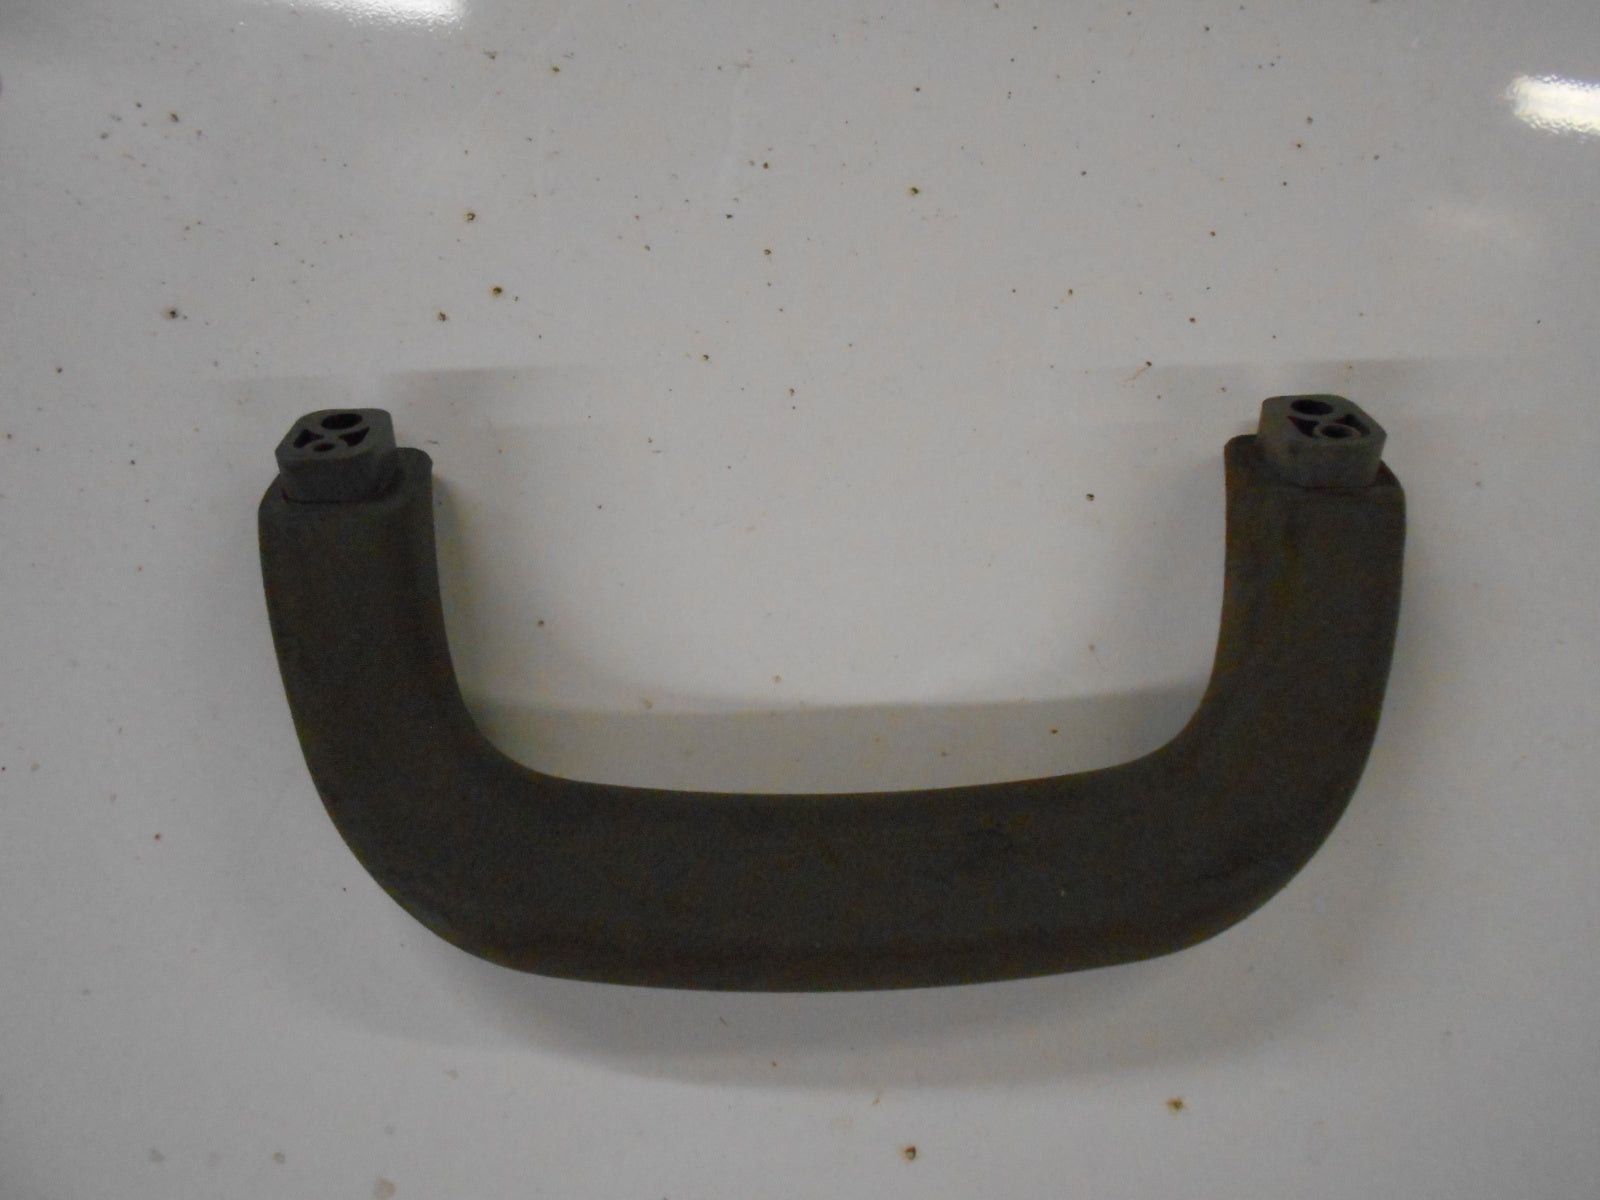 MOLDED GRAB HANDLE - S56-6020-282